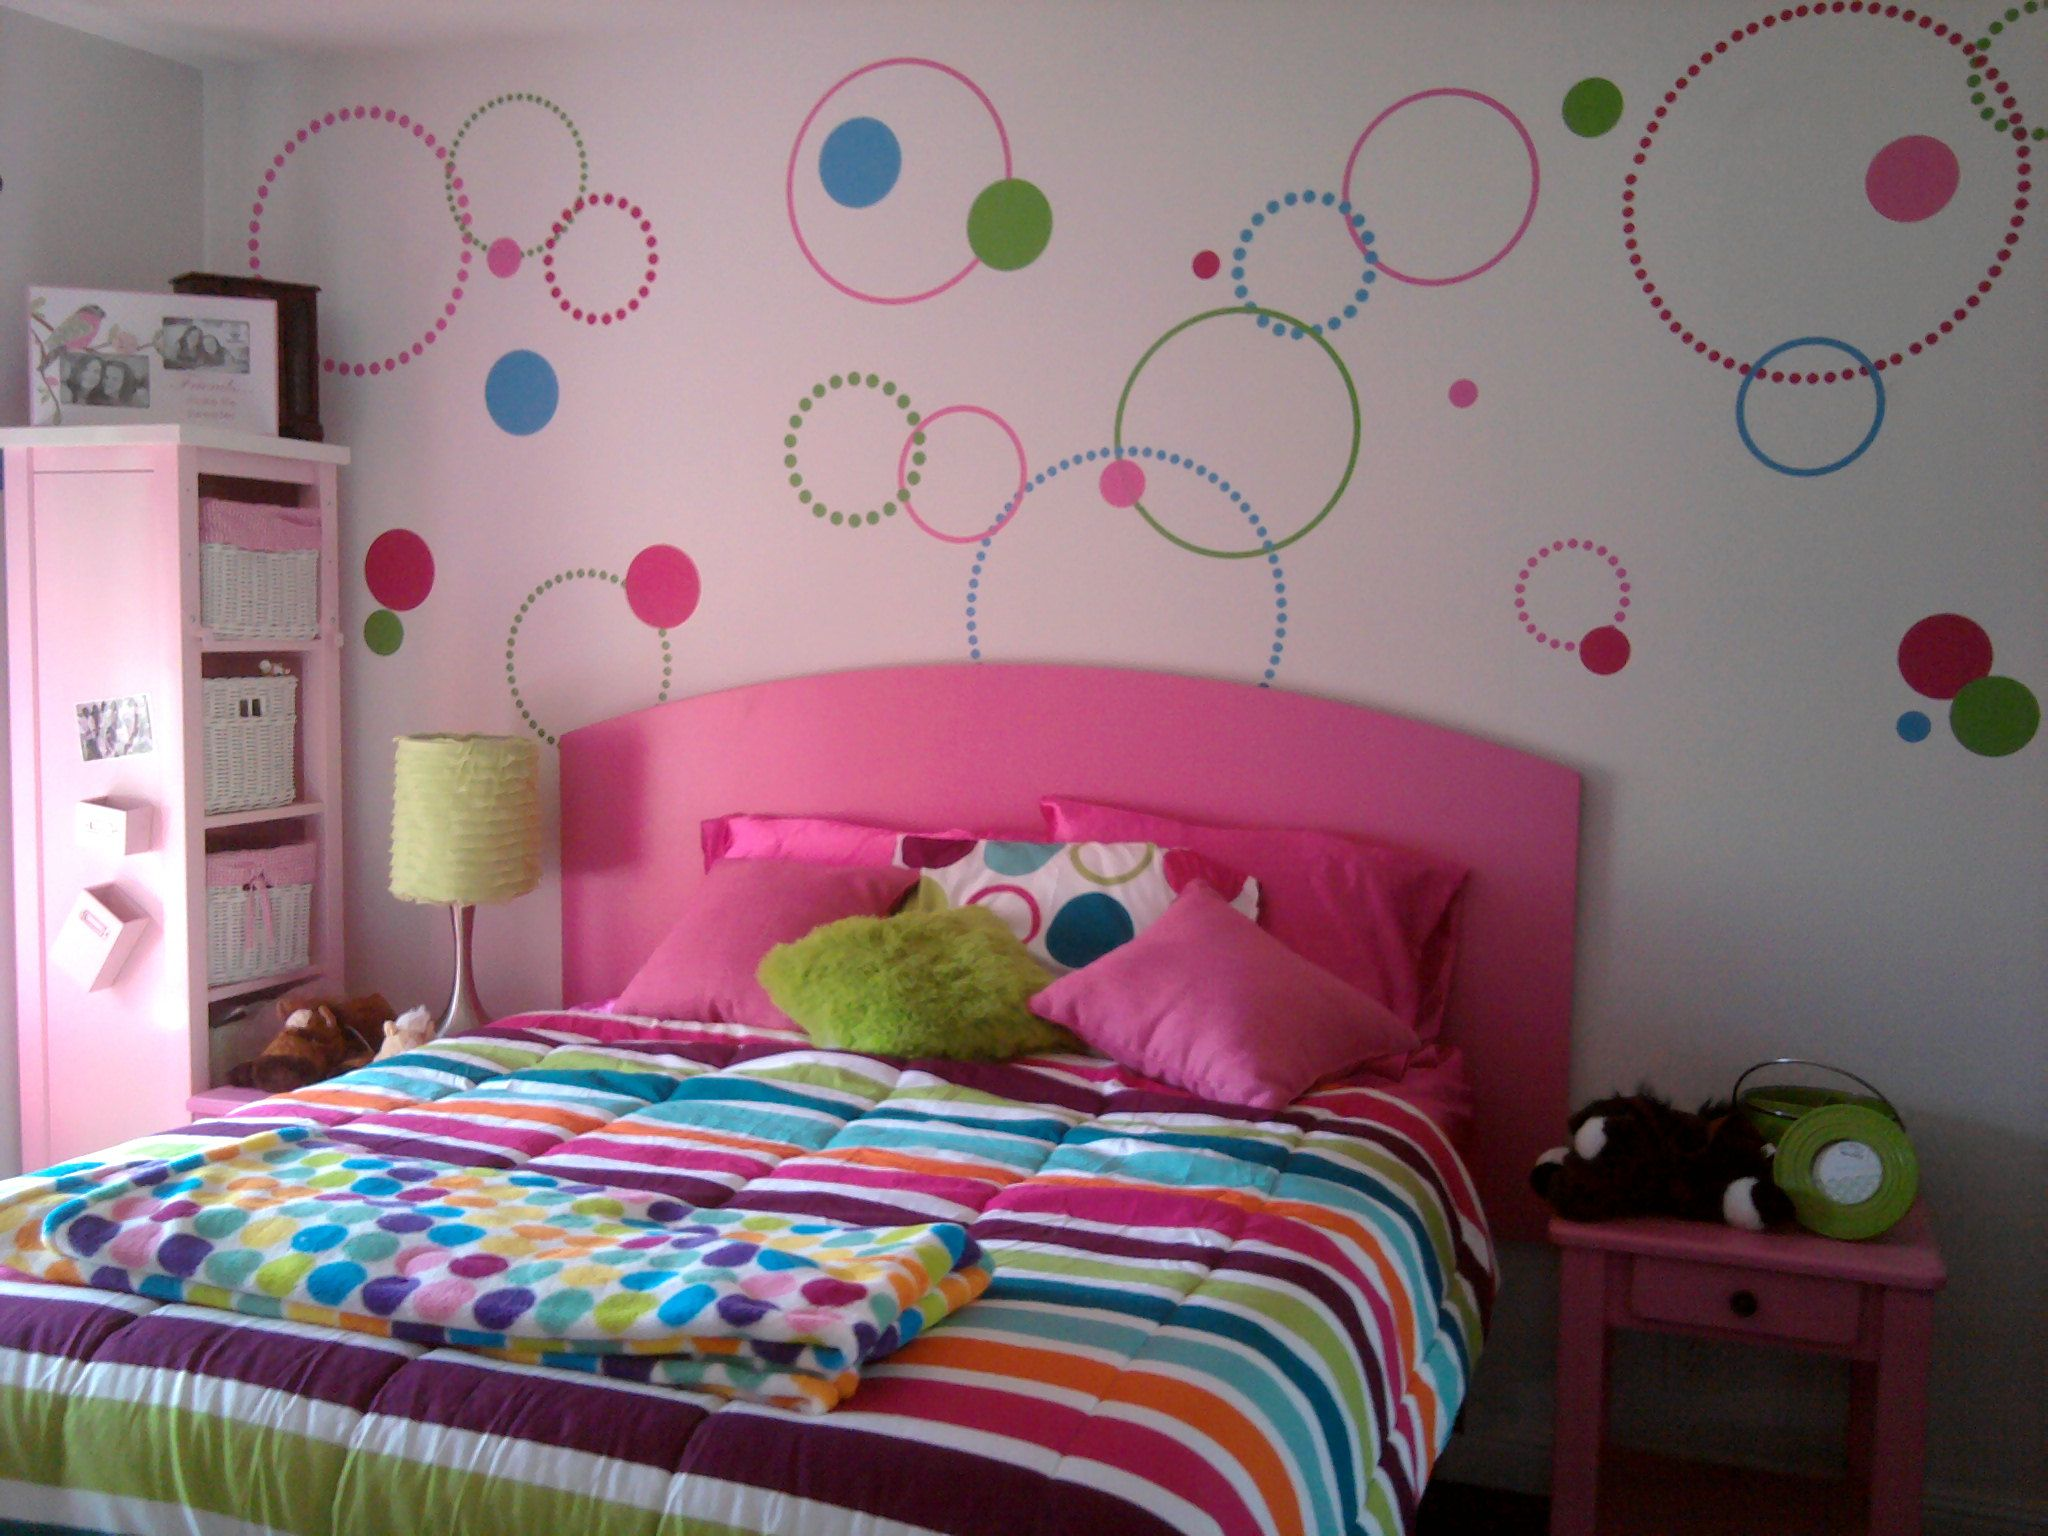 7 Inspiring Kid Room Color Options For Your Little Ones: Polka Dot Room, Finished! Girls Room Teen Bedroom